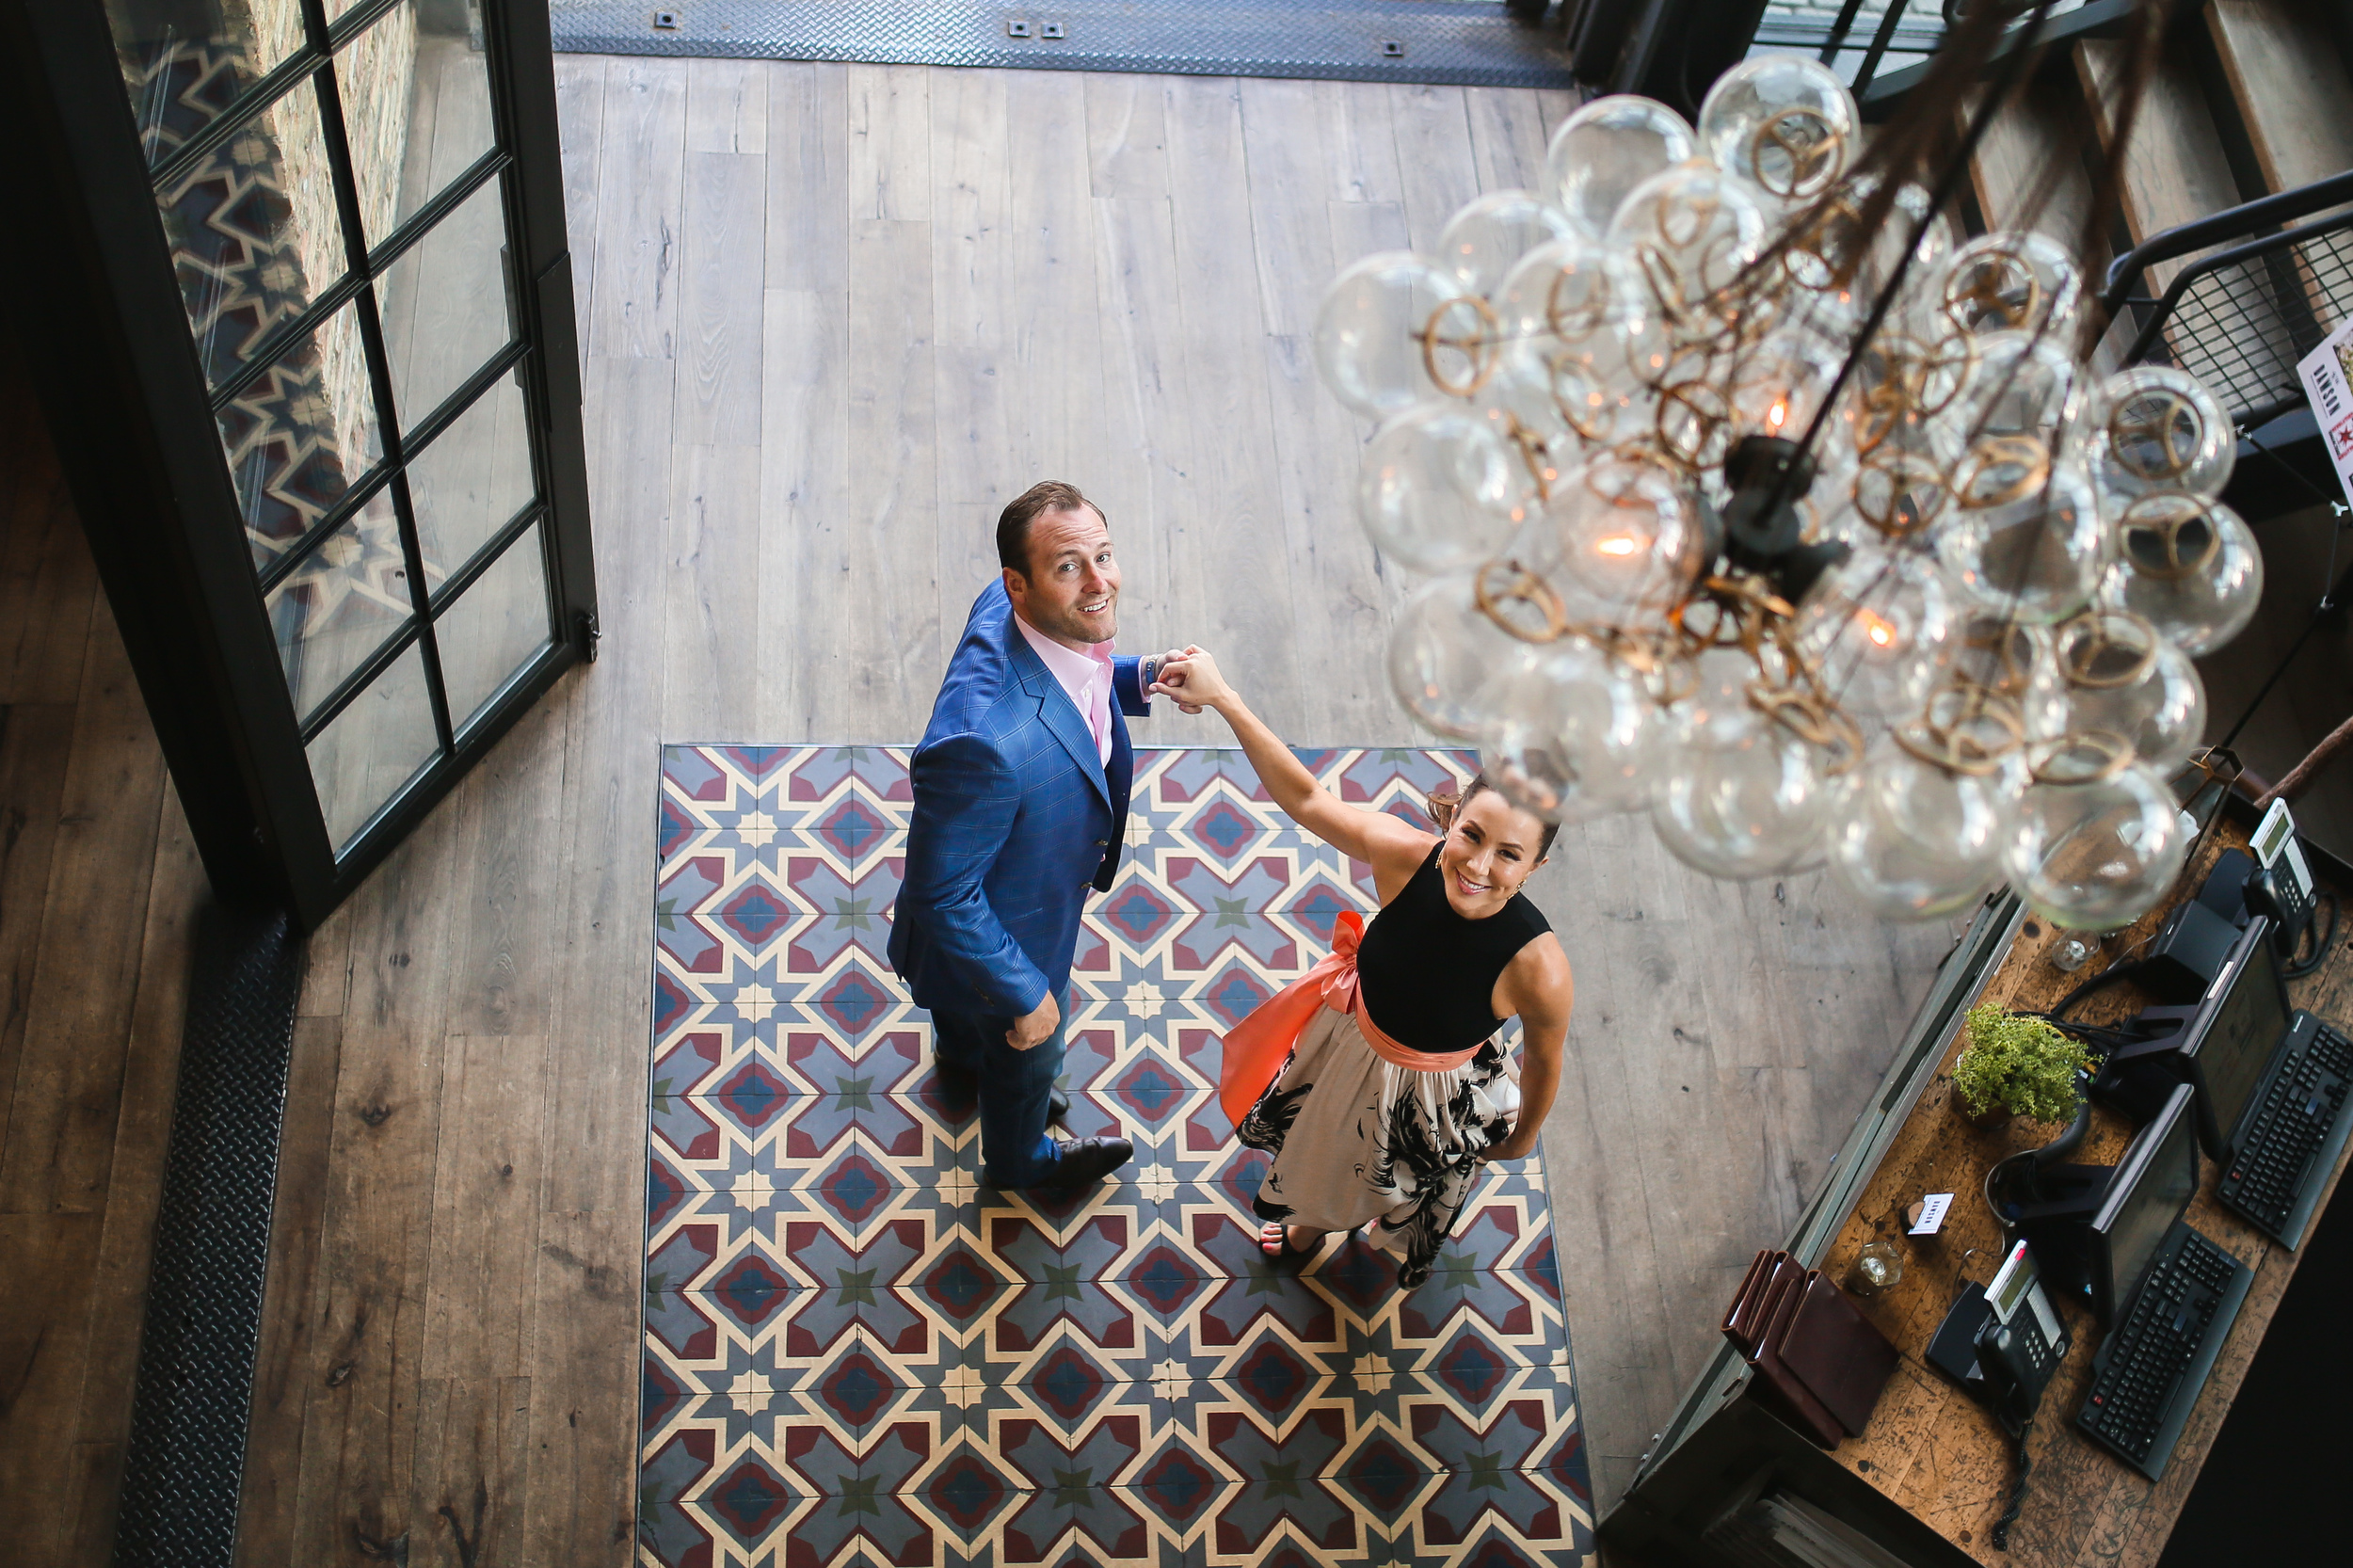 couple in middle of tiled foyer